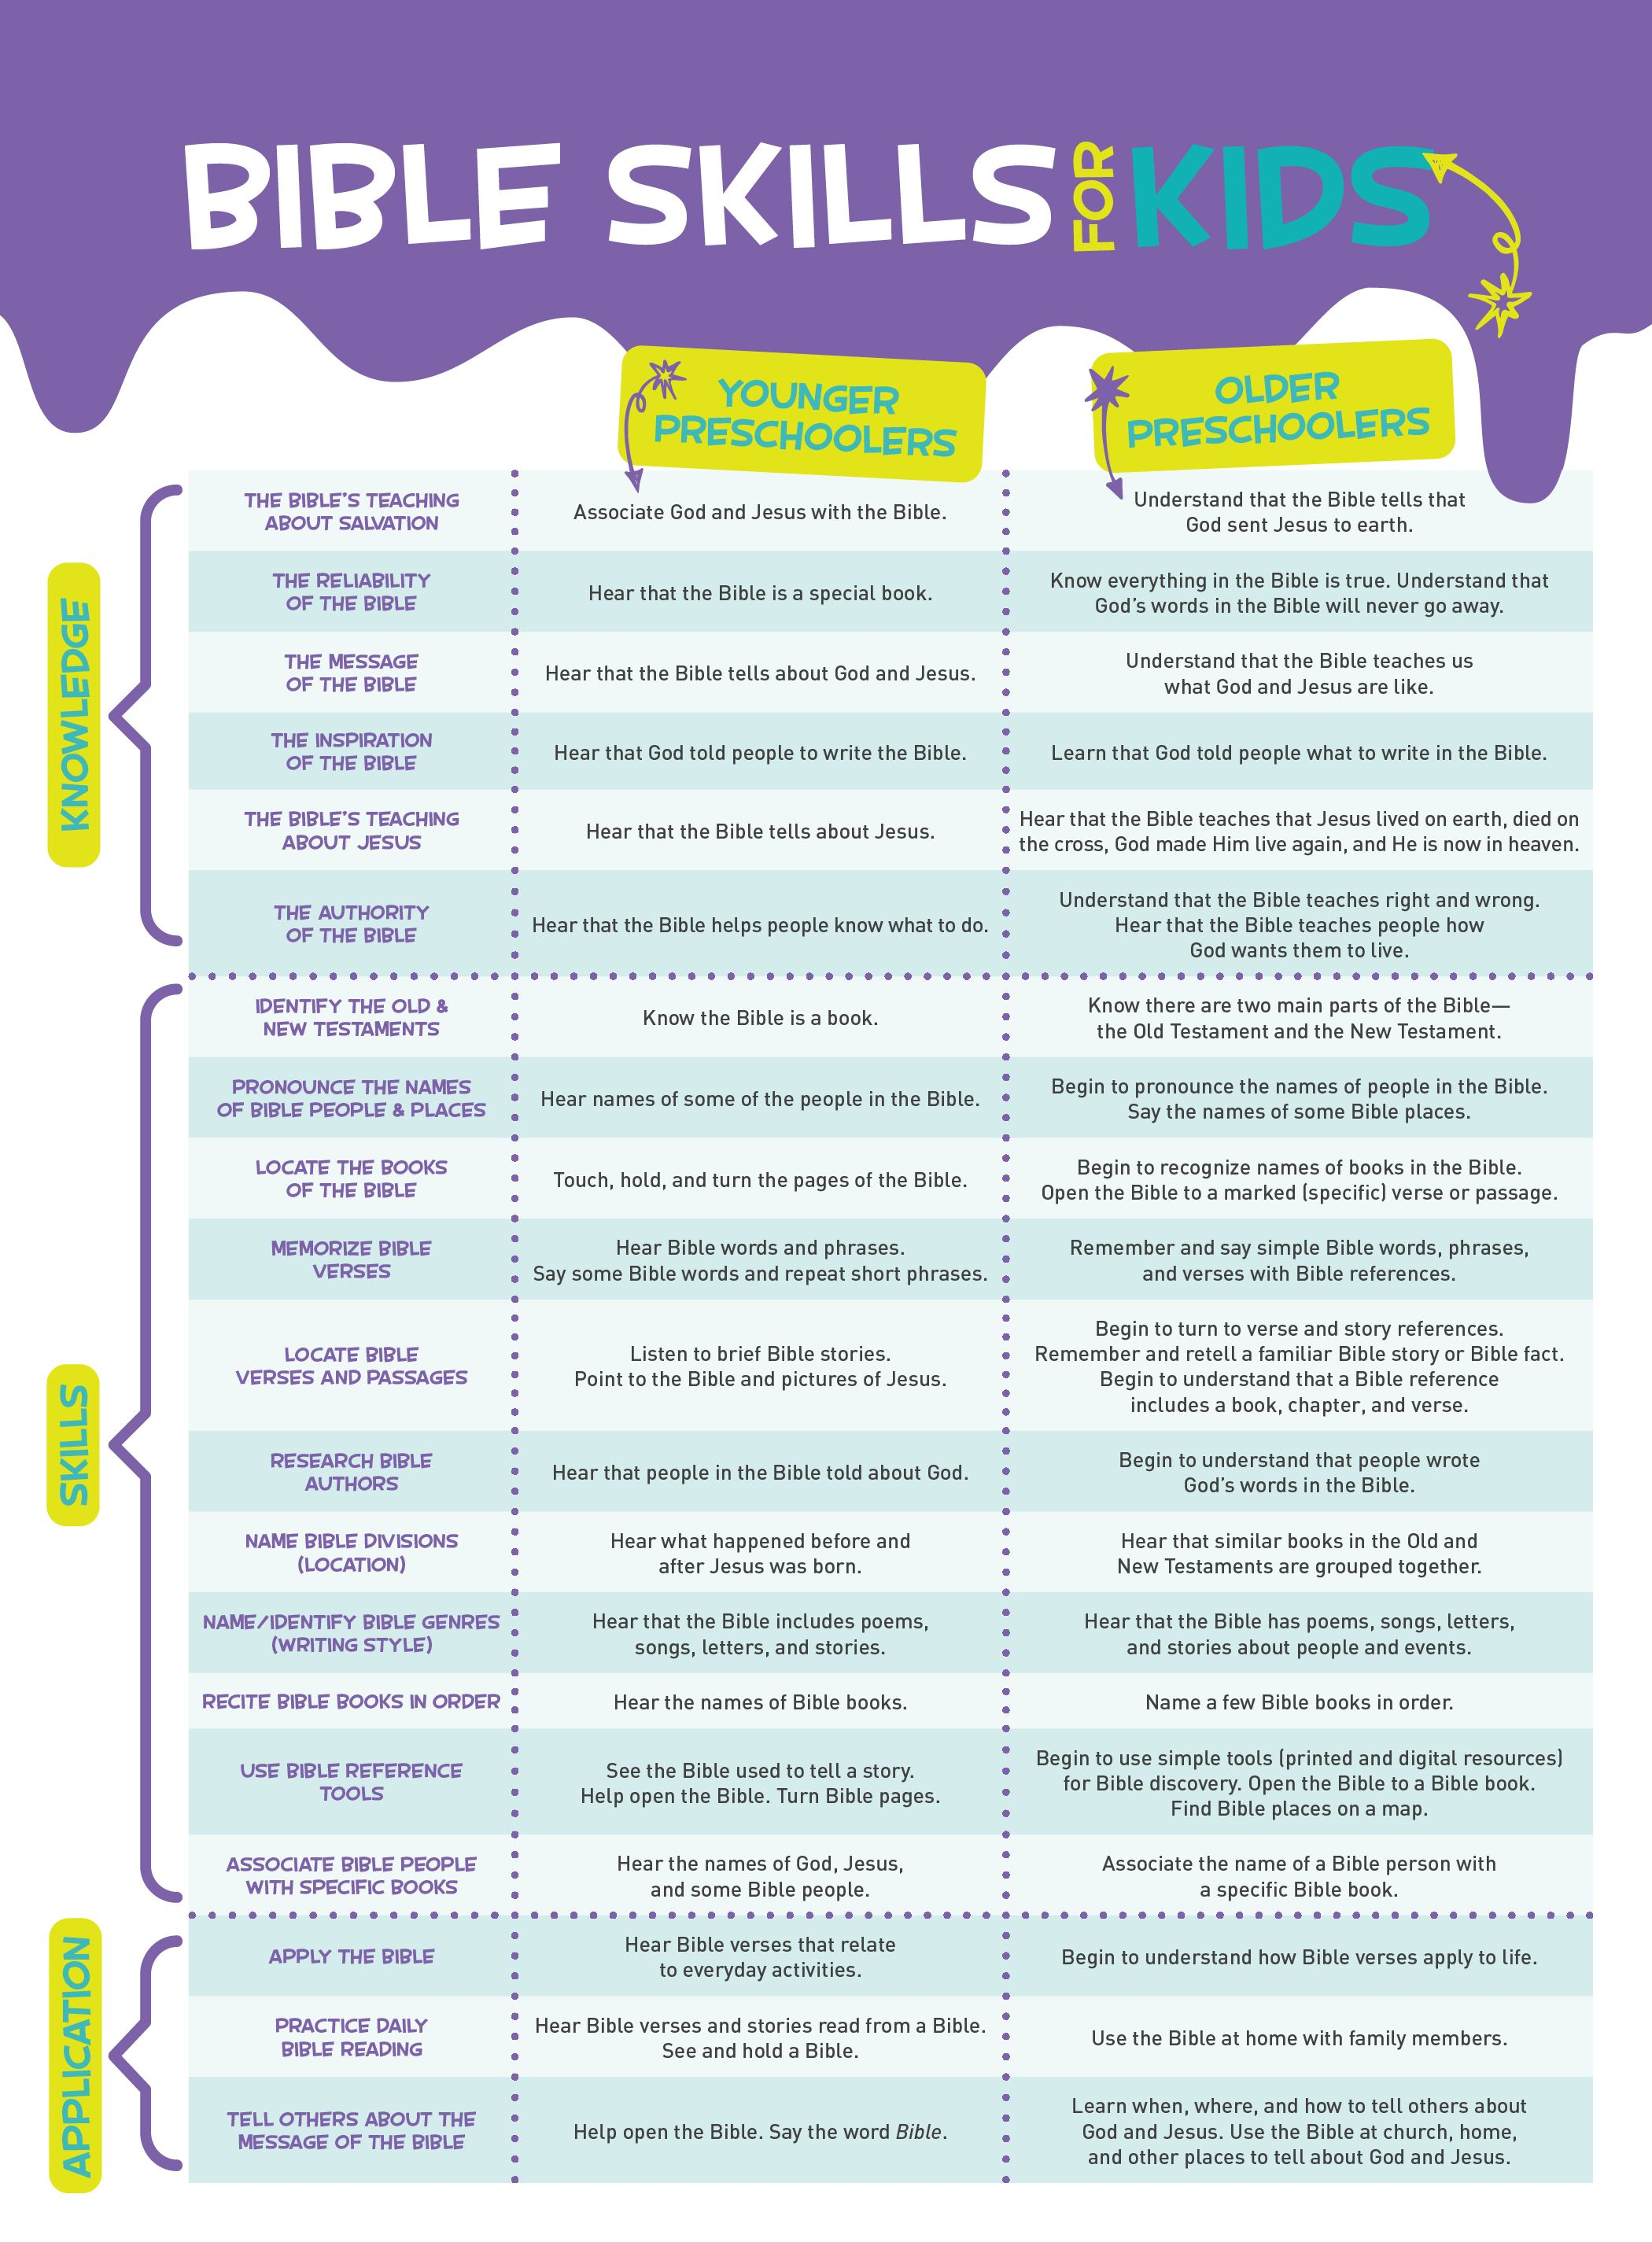 Bible Skills for Kids poster